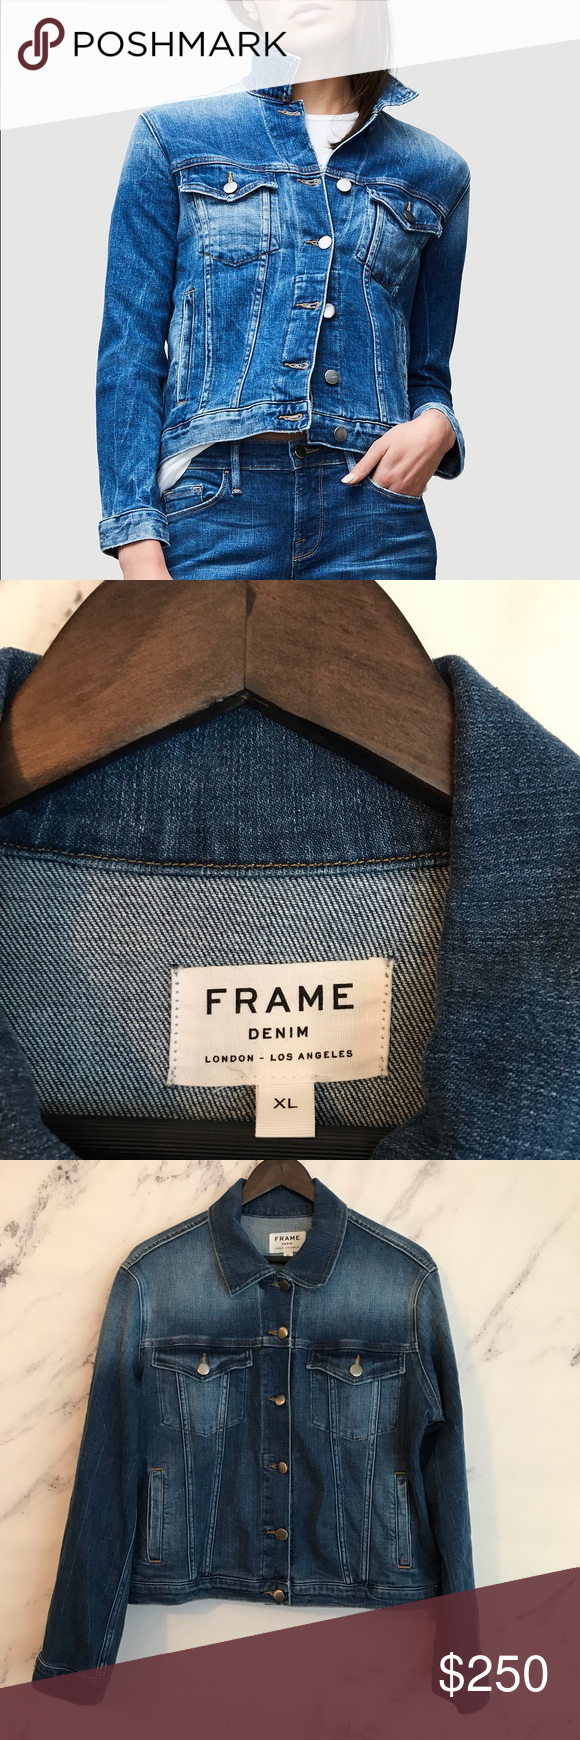 Frame Xl Le Vintage Jacket Waltham Way Soft Stretch Denim And A Gently Worn Fade Give A Well Loved Look To A Classic Si Vintage Jacket Jackets Clothes Design